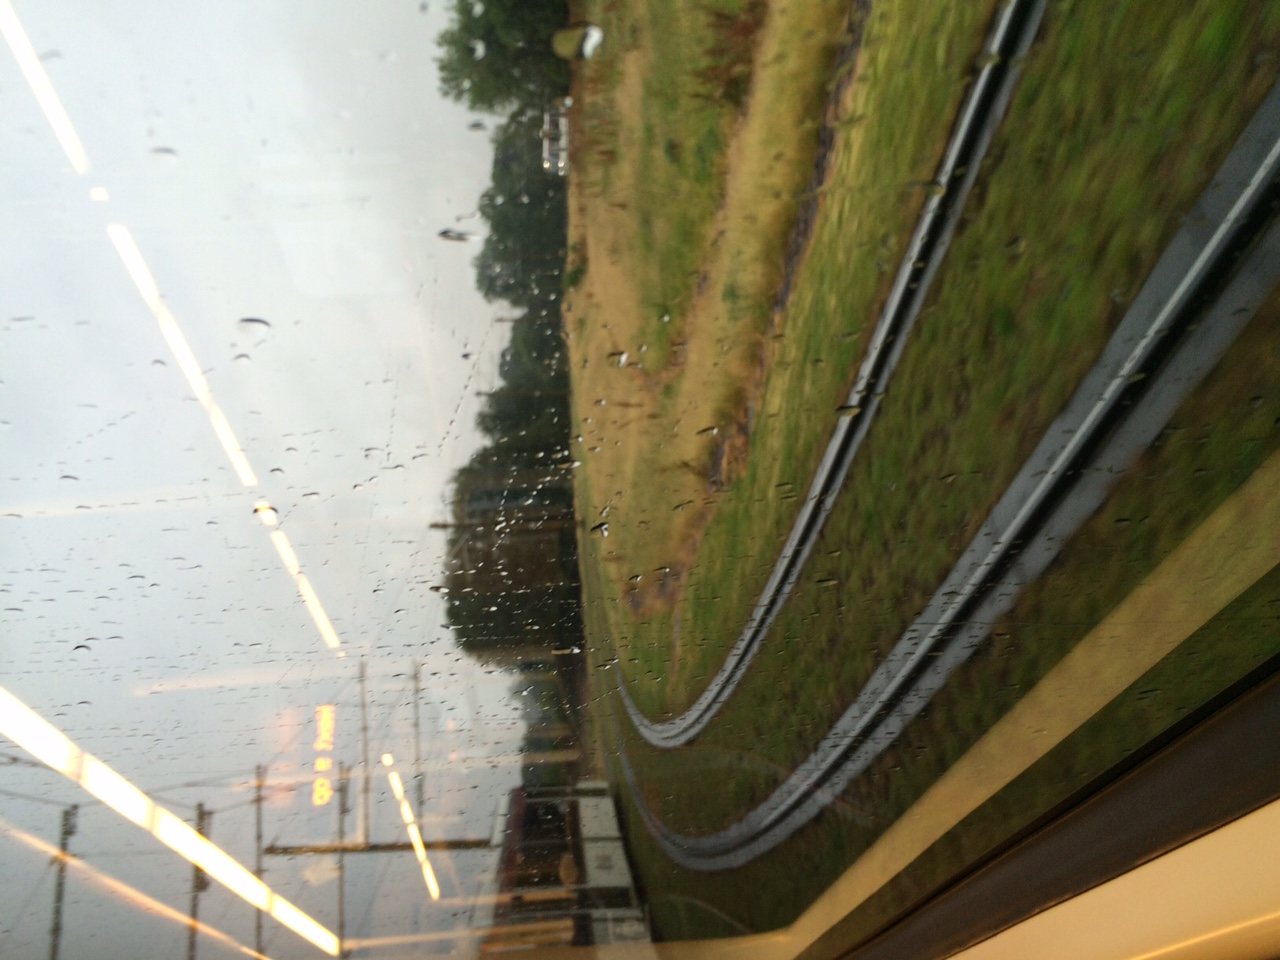 View from the tram